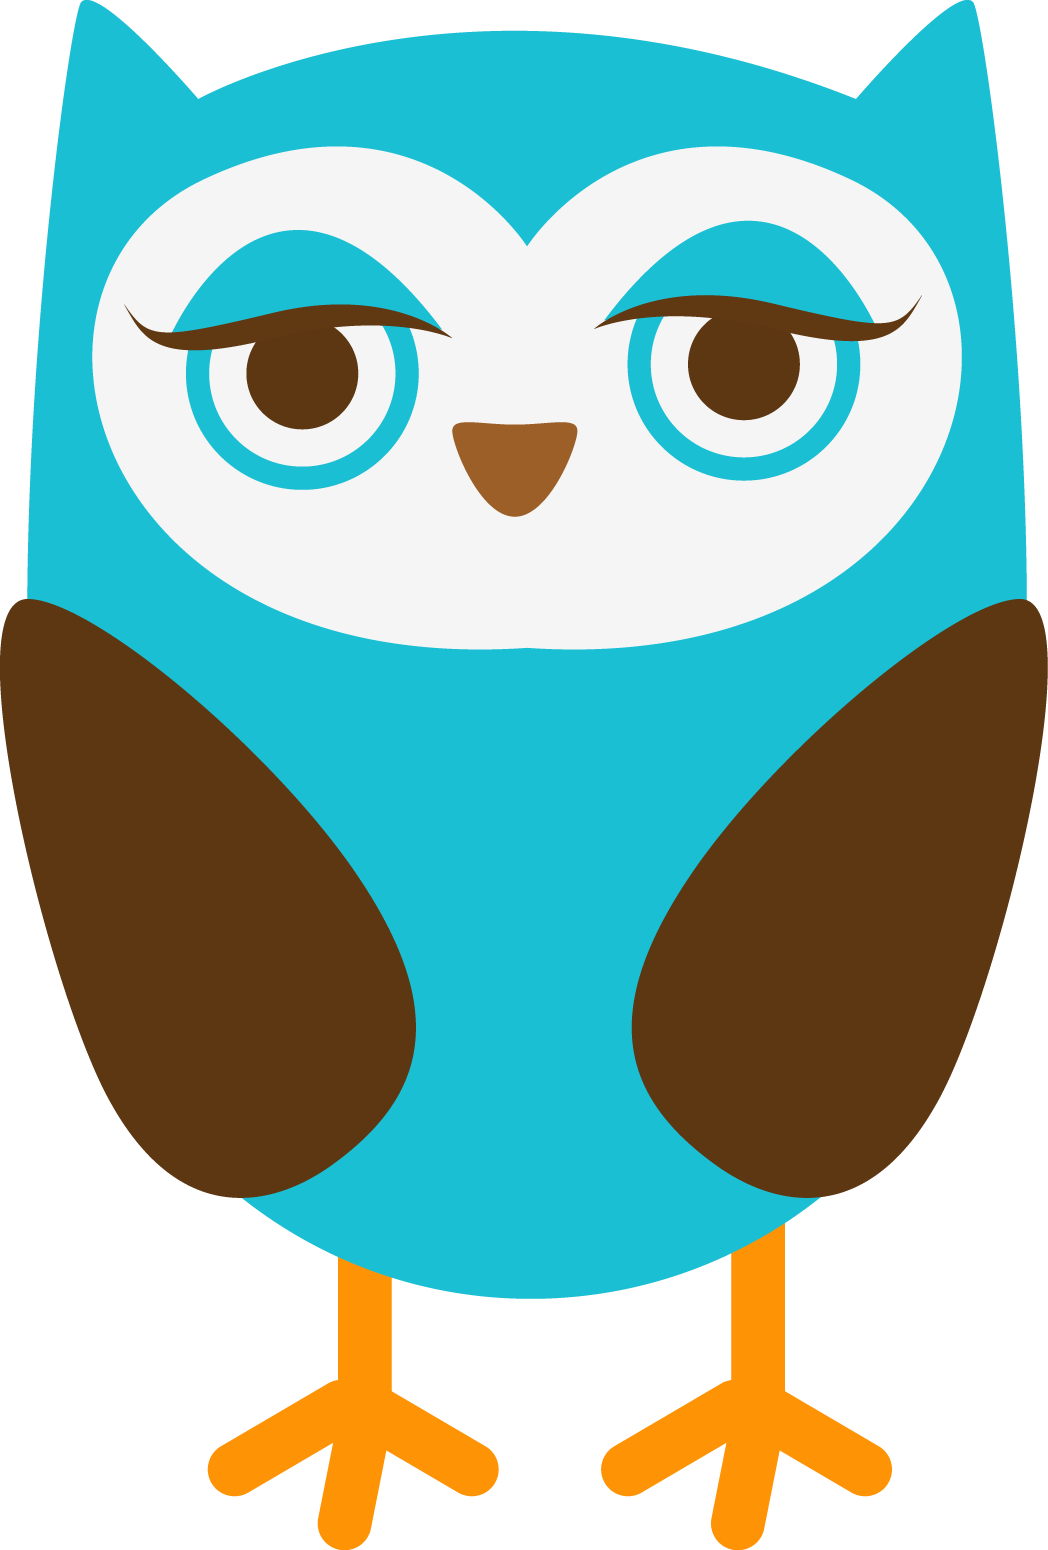 Clipart butterfly owl. Pin by naenae nanny